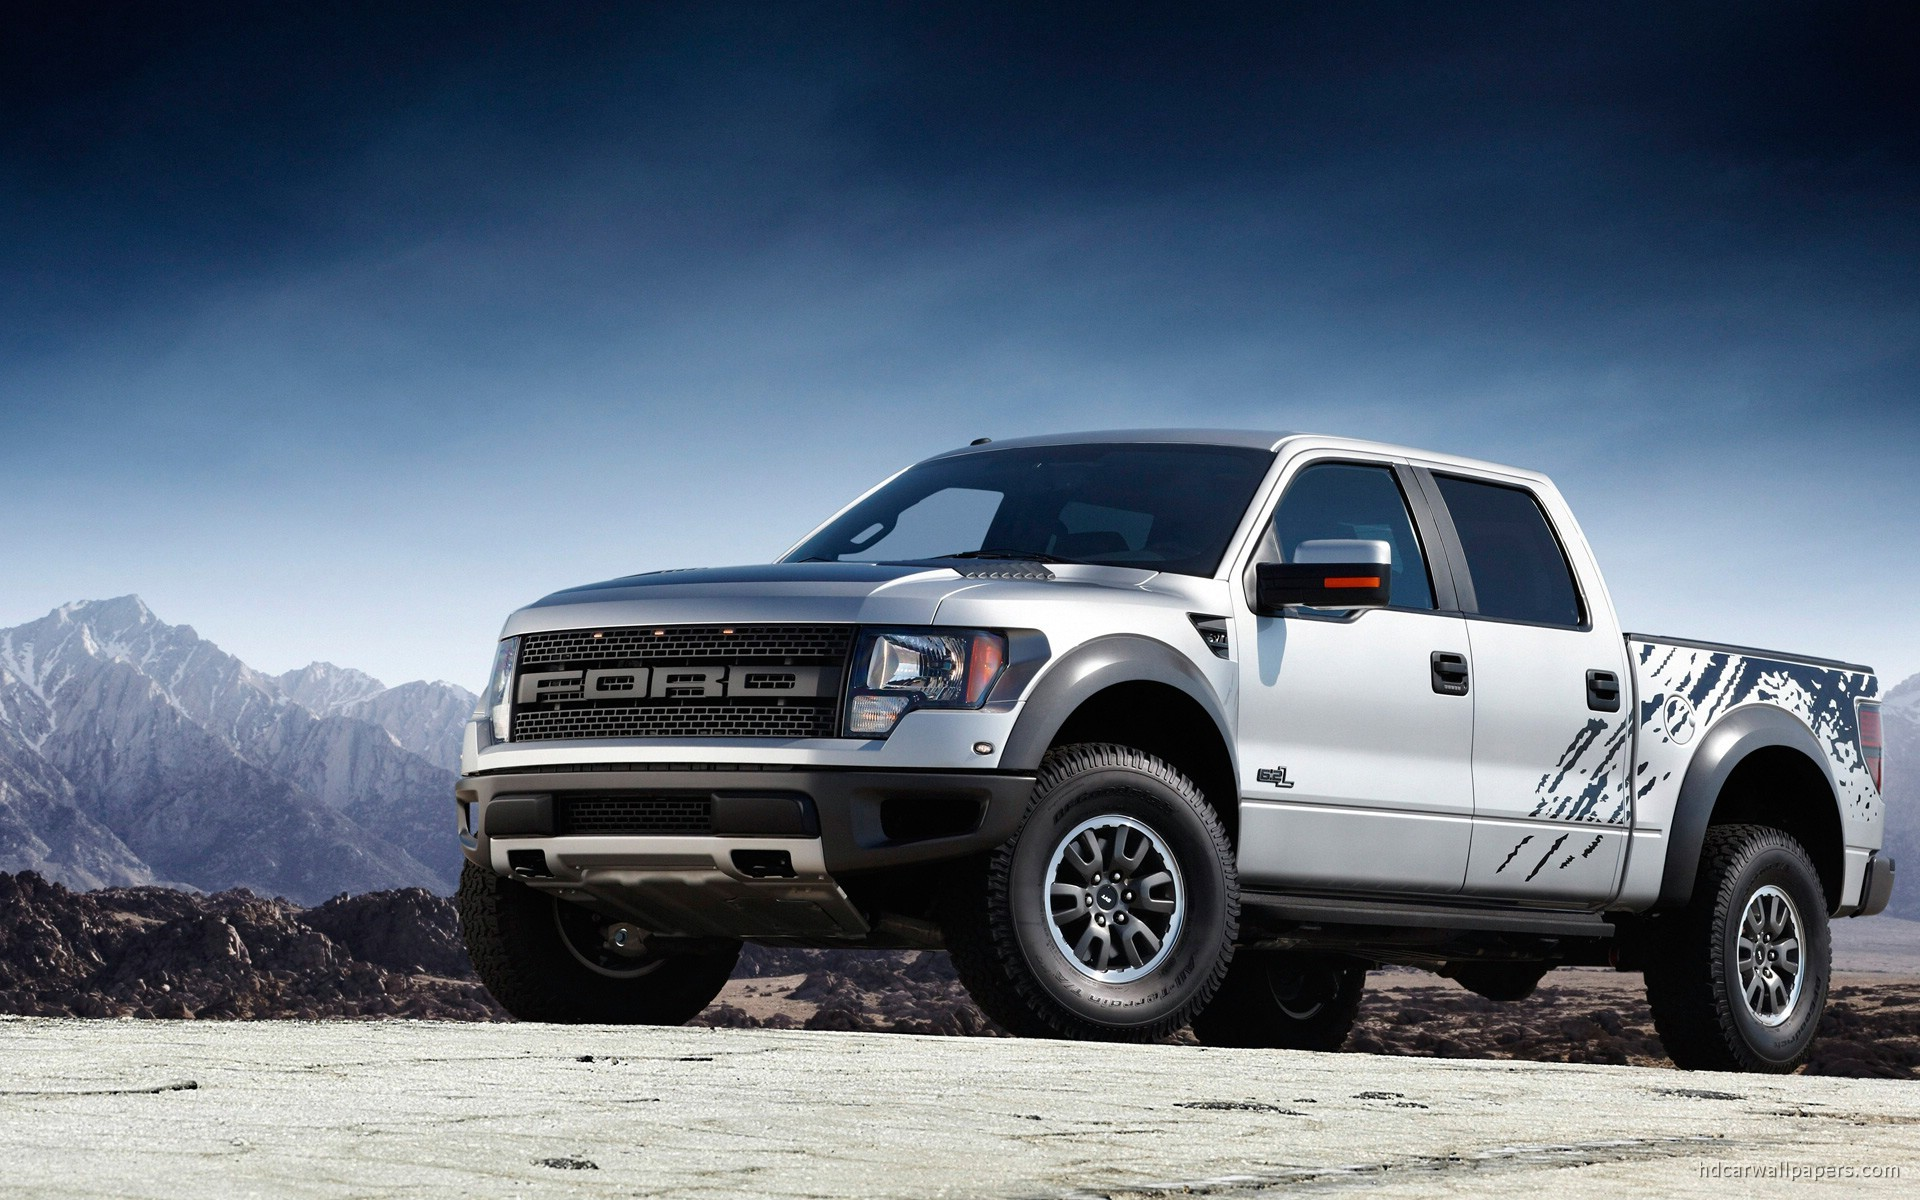 1920x1200 Humphrey__13 images Ford F-150 Raptor Wallpapers. HD wallpaper and  background photos